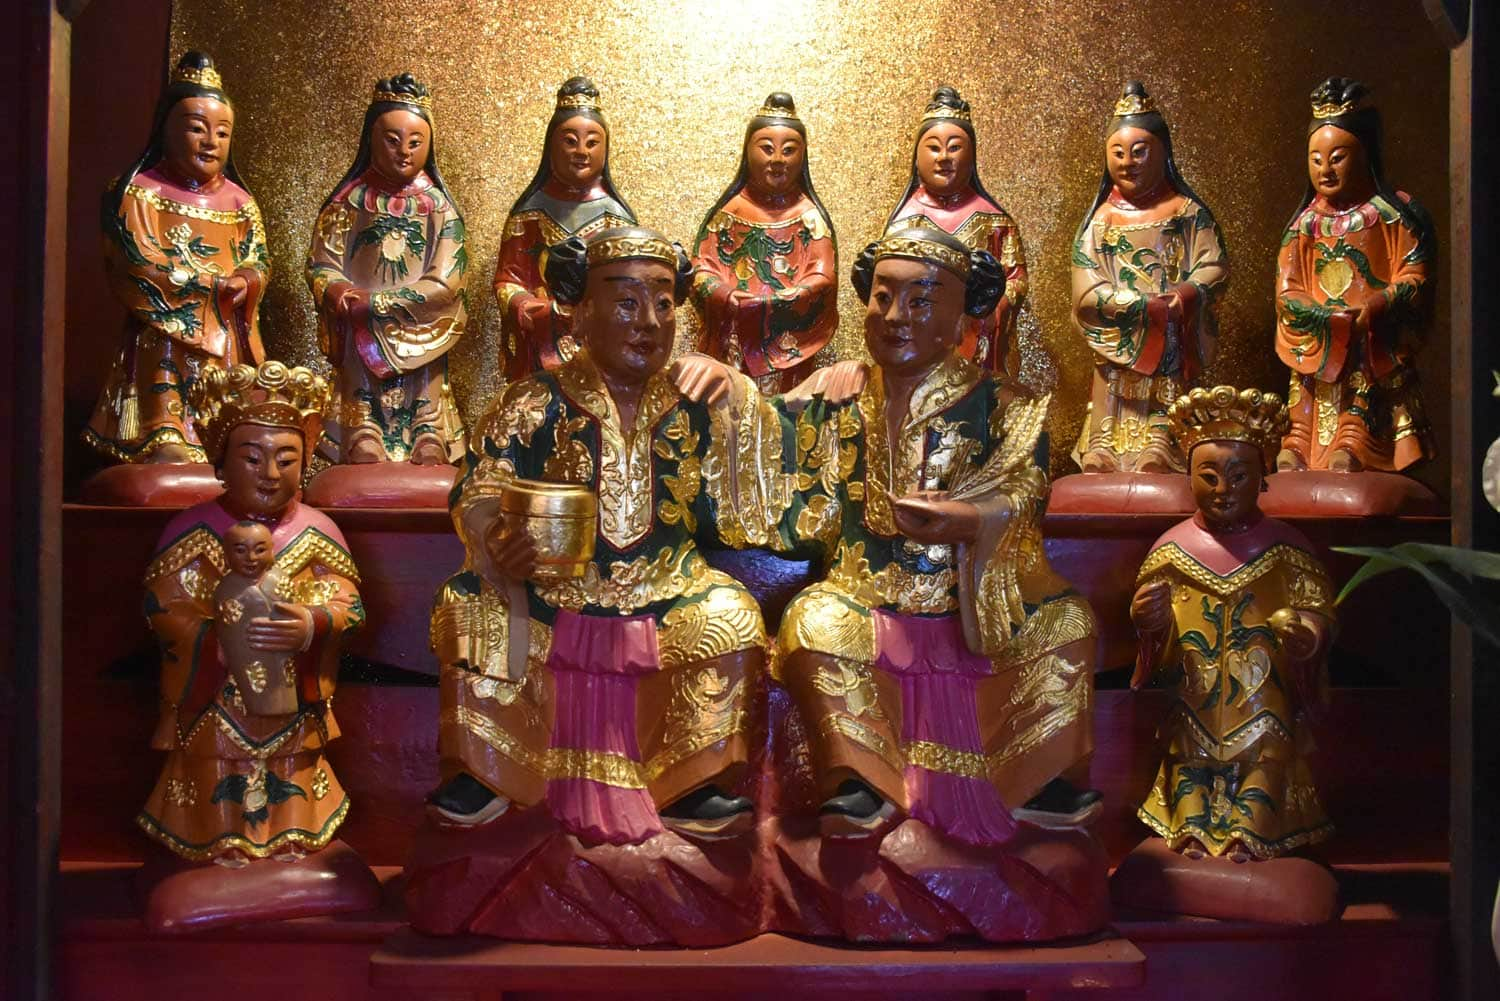 Hong Kung Temple temple figurines